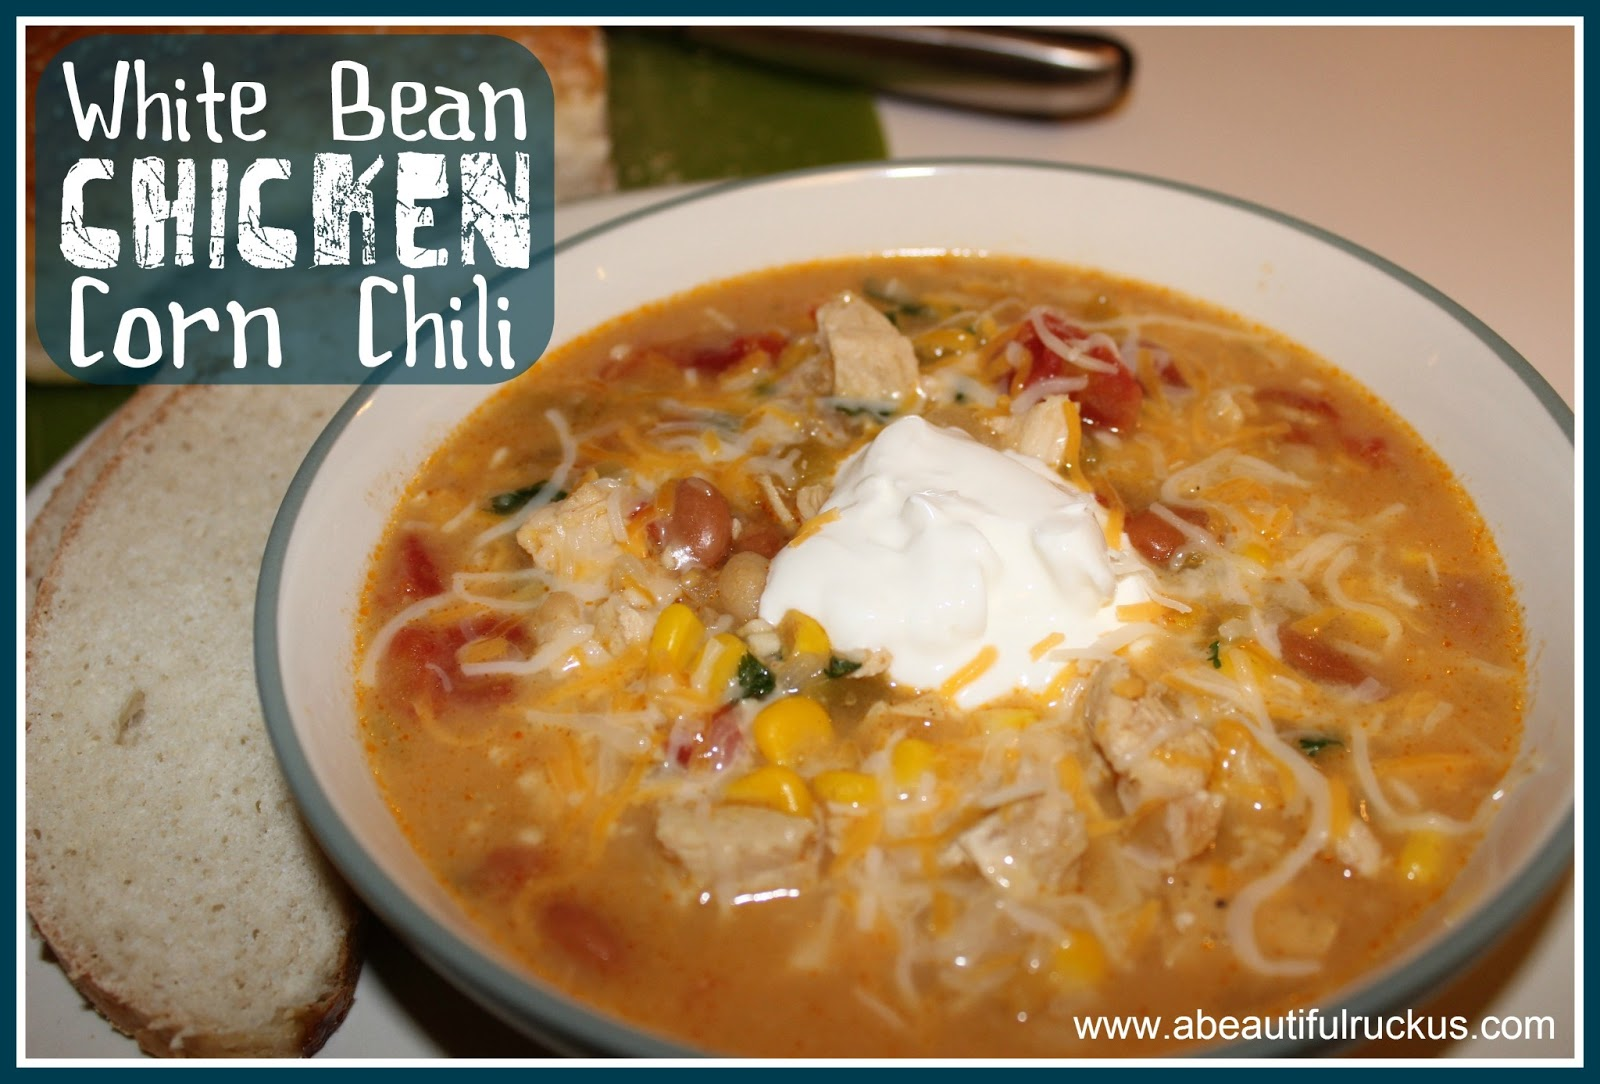 Beautiful Ruckus: {Recipe} White Bean Chicken Corn Chili